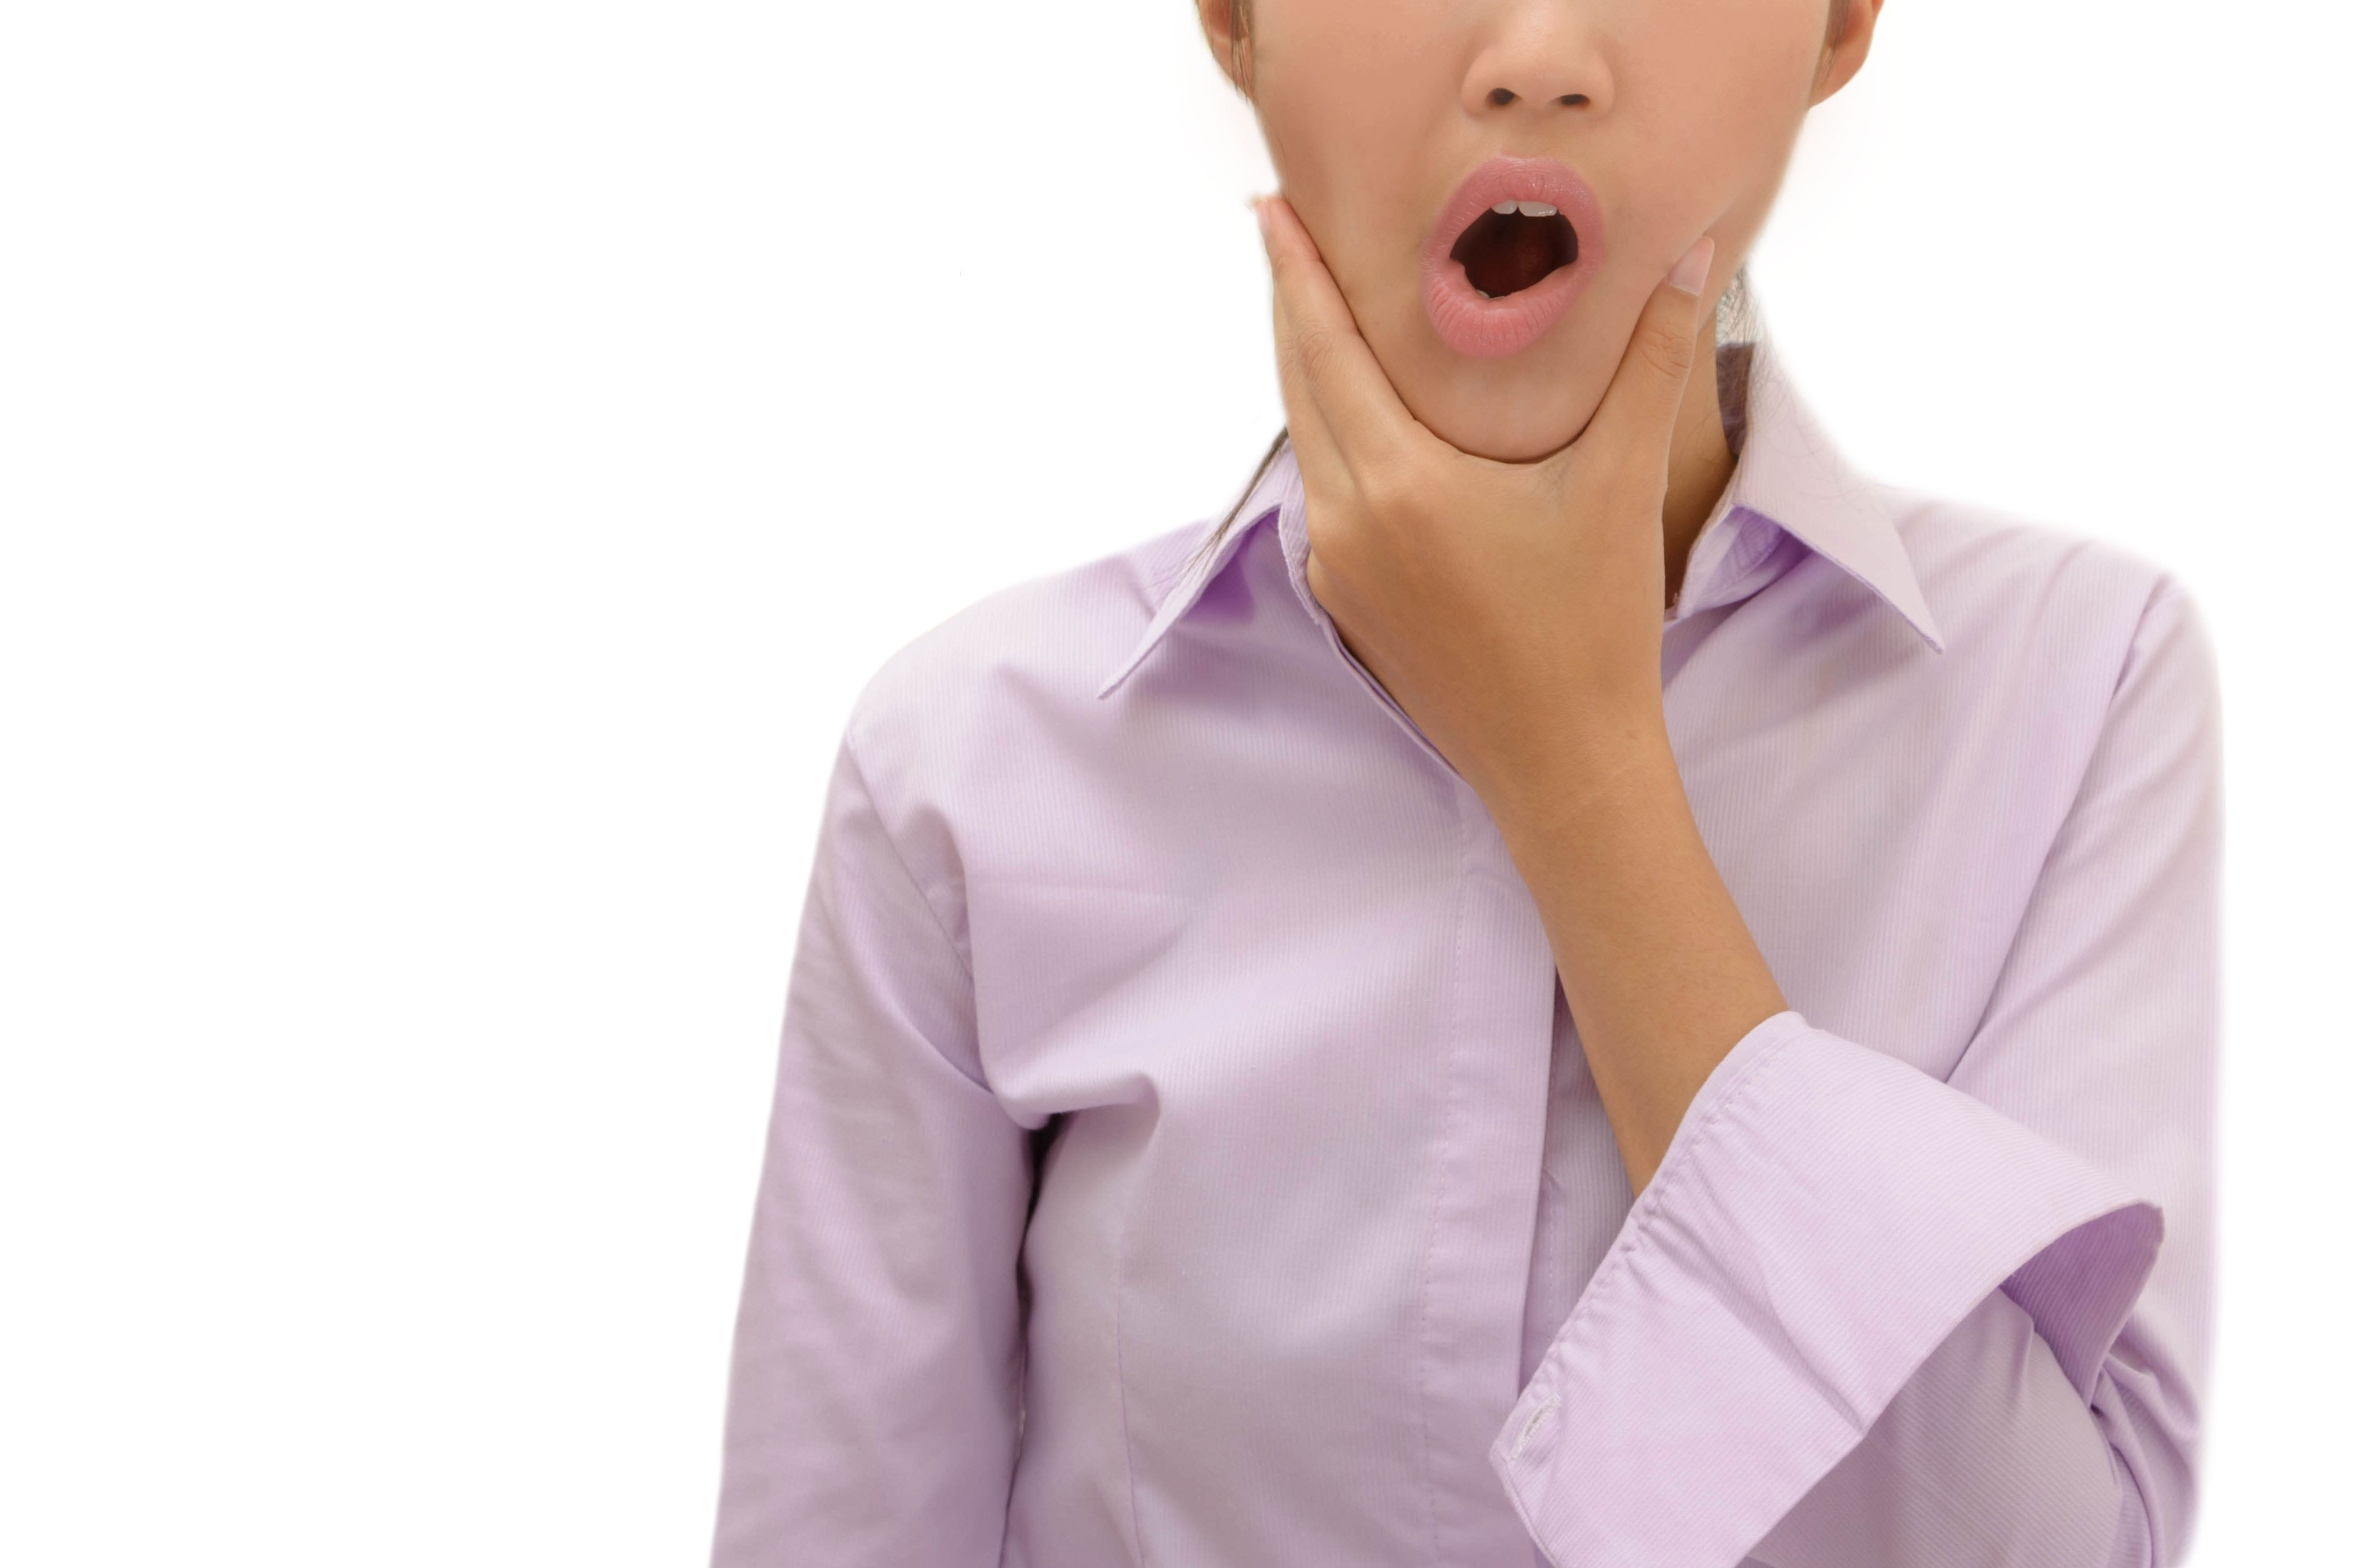 An image depicting a person suffering from jaw clicking symptoms